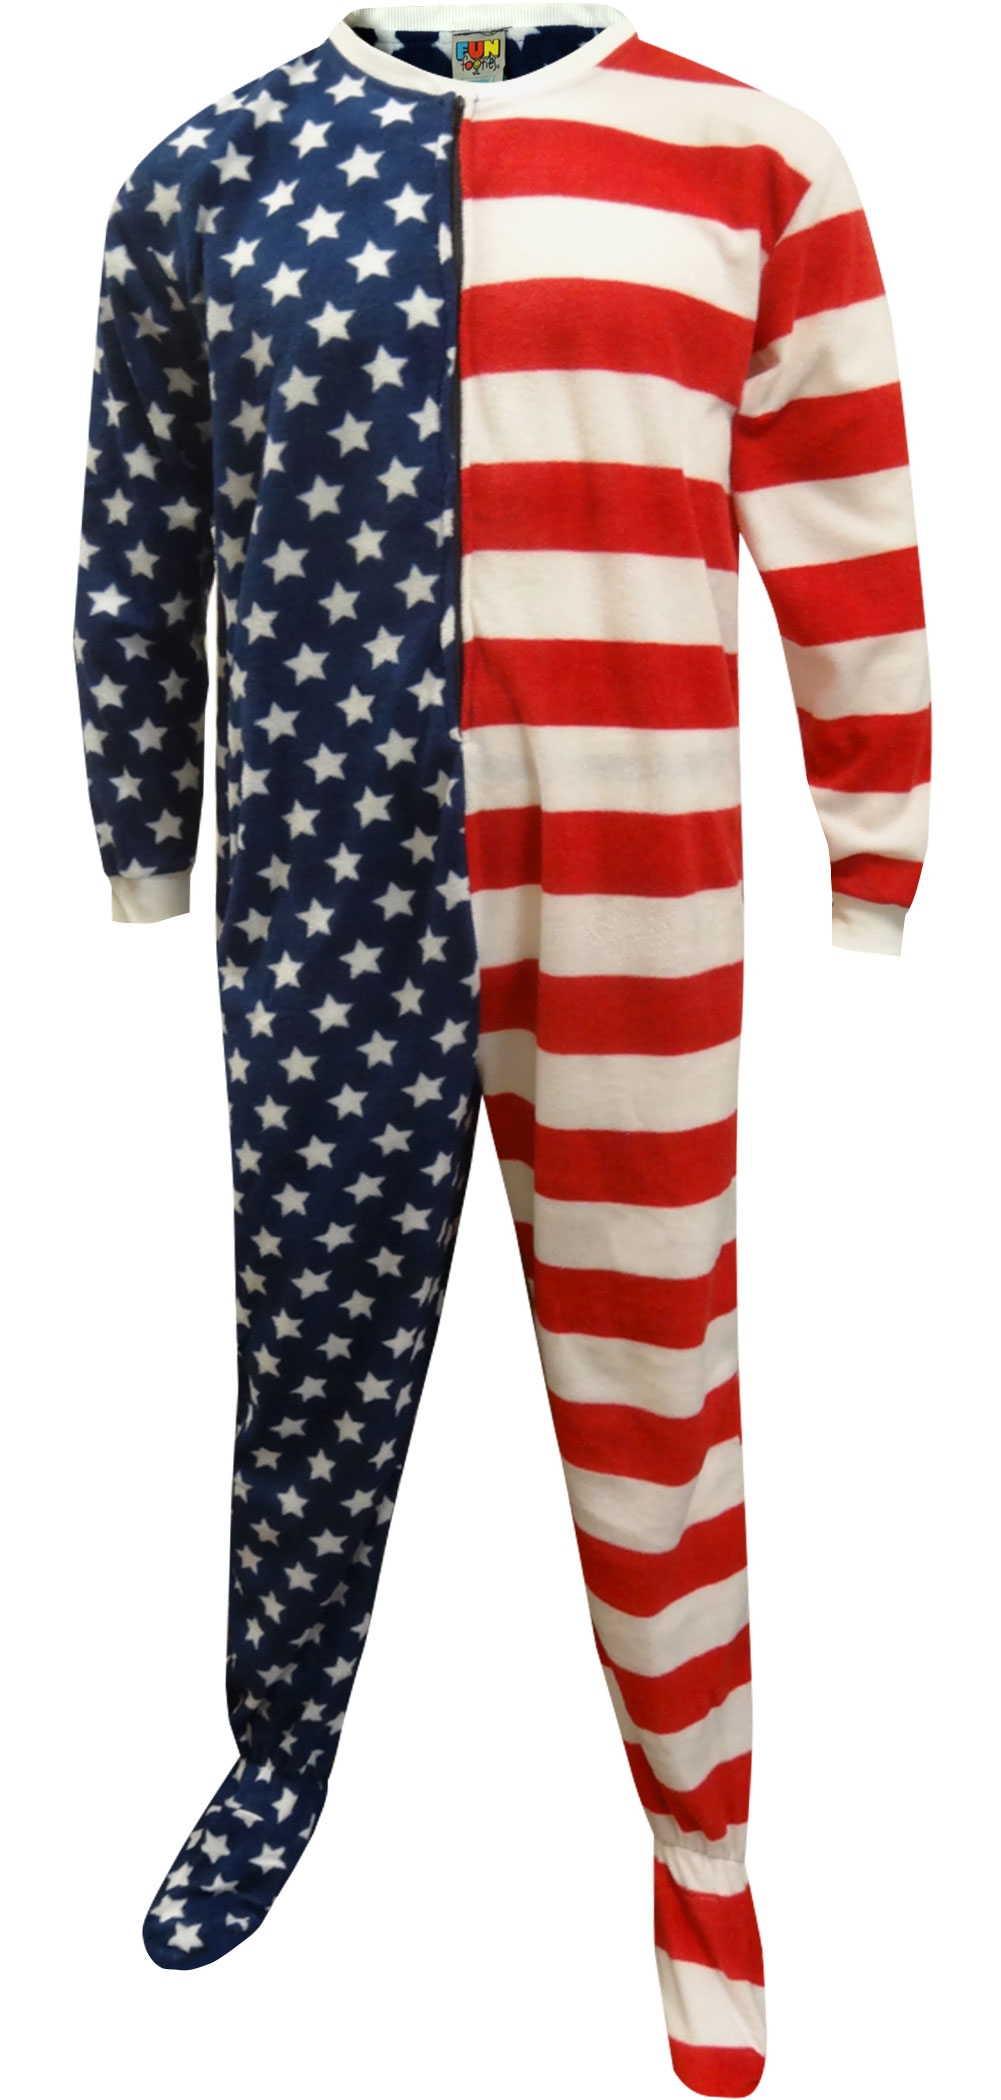 Image of American Flag Footie Pajama for men